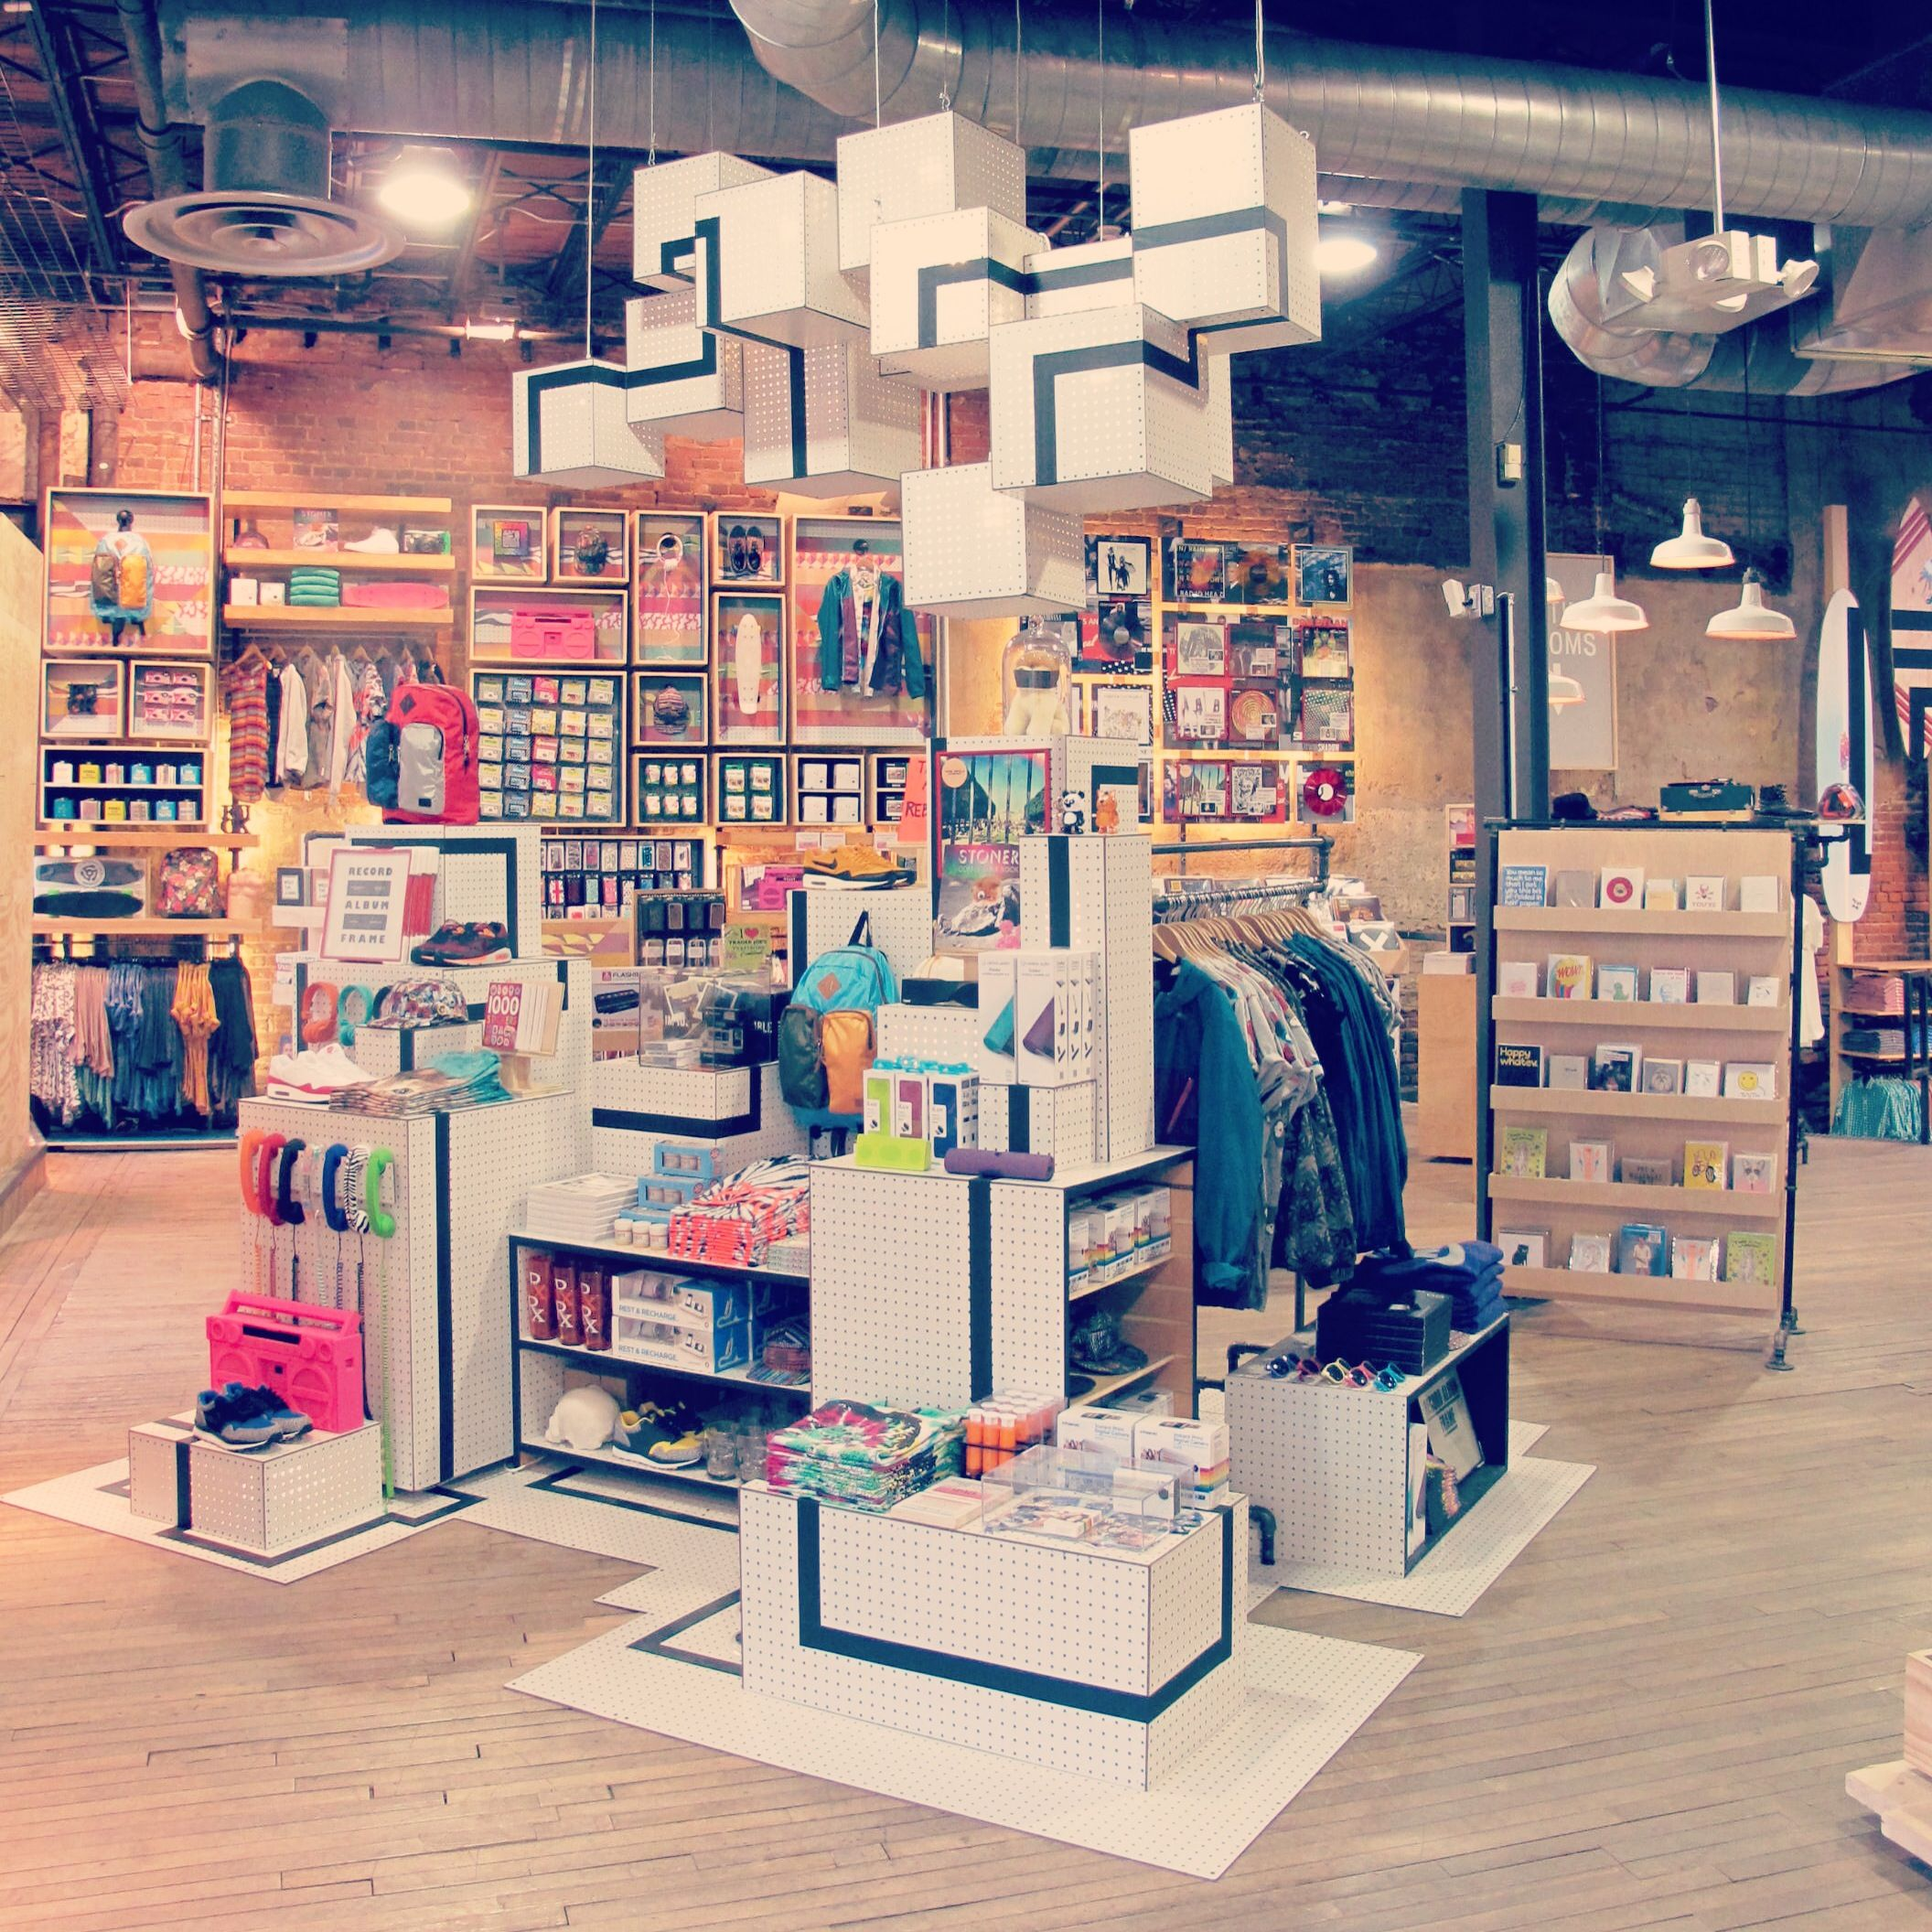 Home Interior Stores: Love The Interior Design At Urban Outfitter Stores